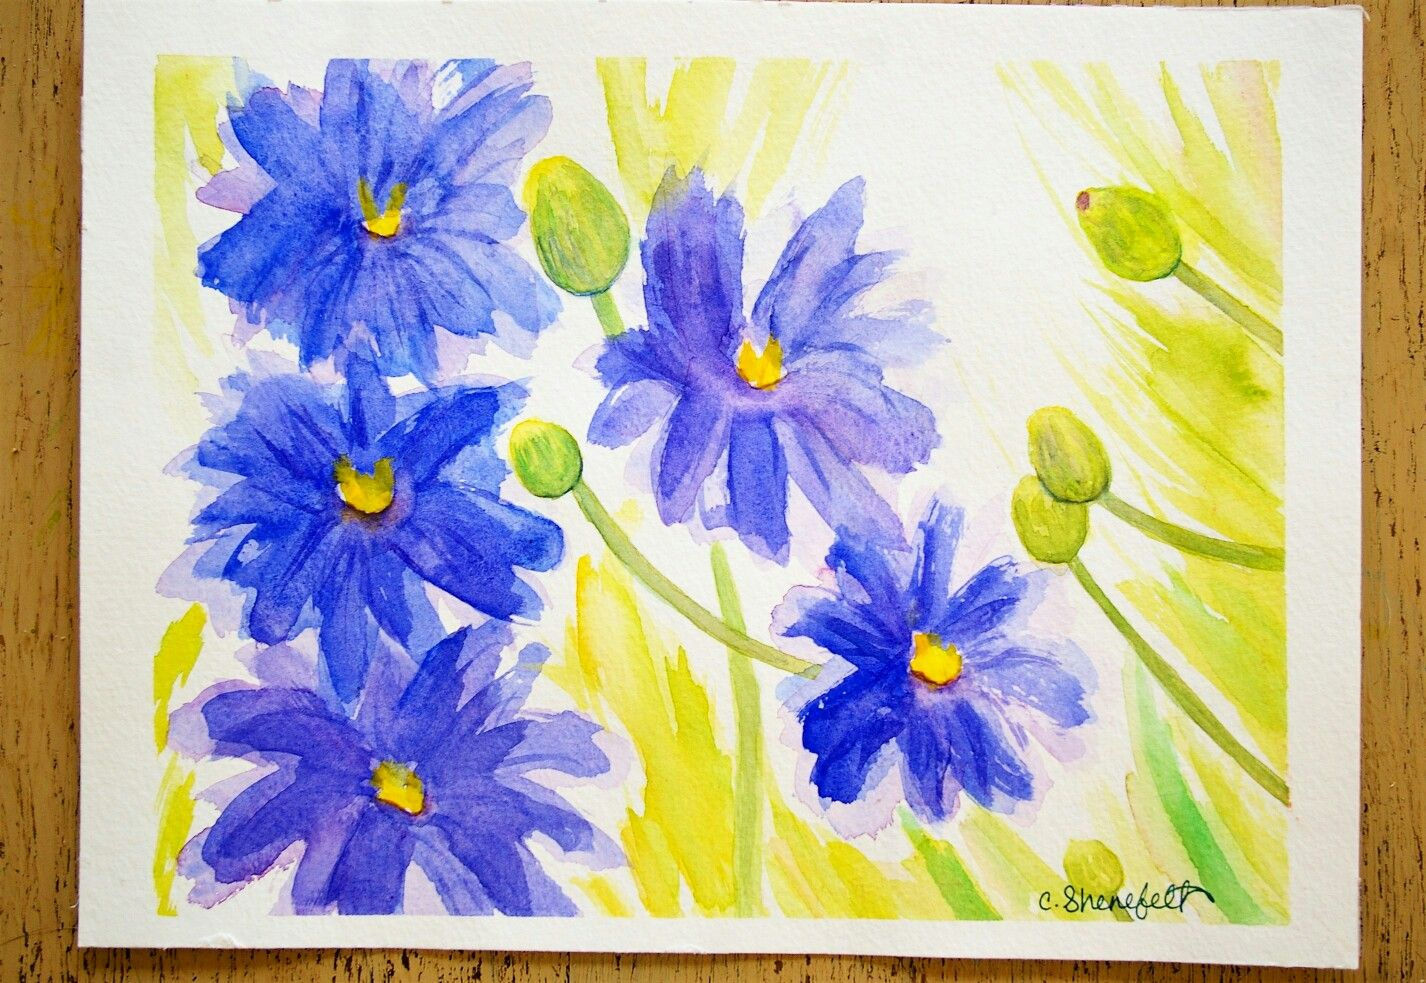 Spring Flowers Painted In Watercolor One Of My Latest Paintings Measures 8x10 Inches